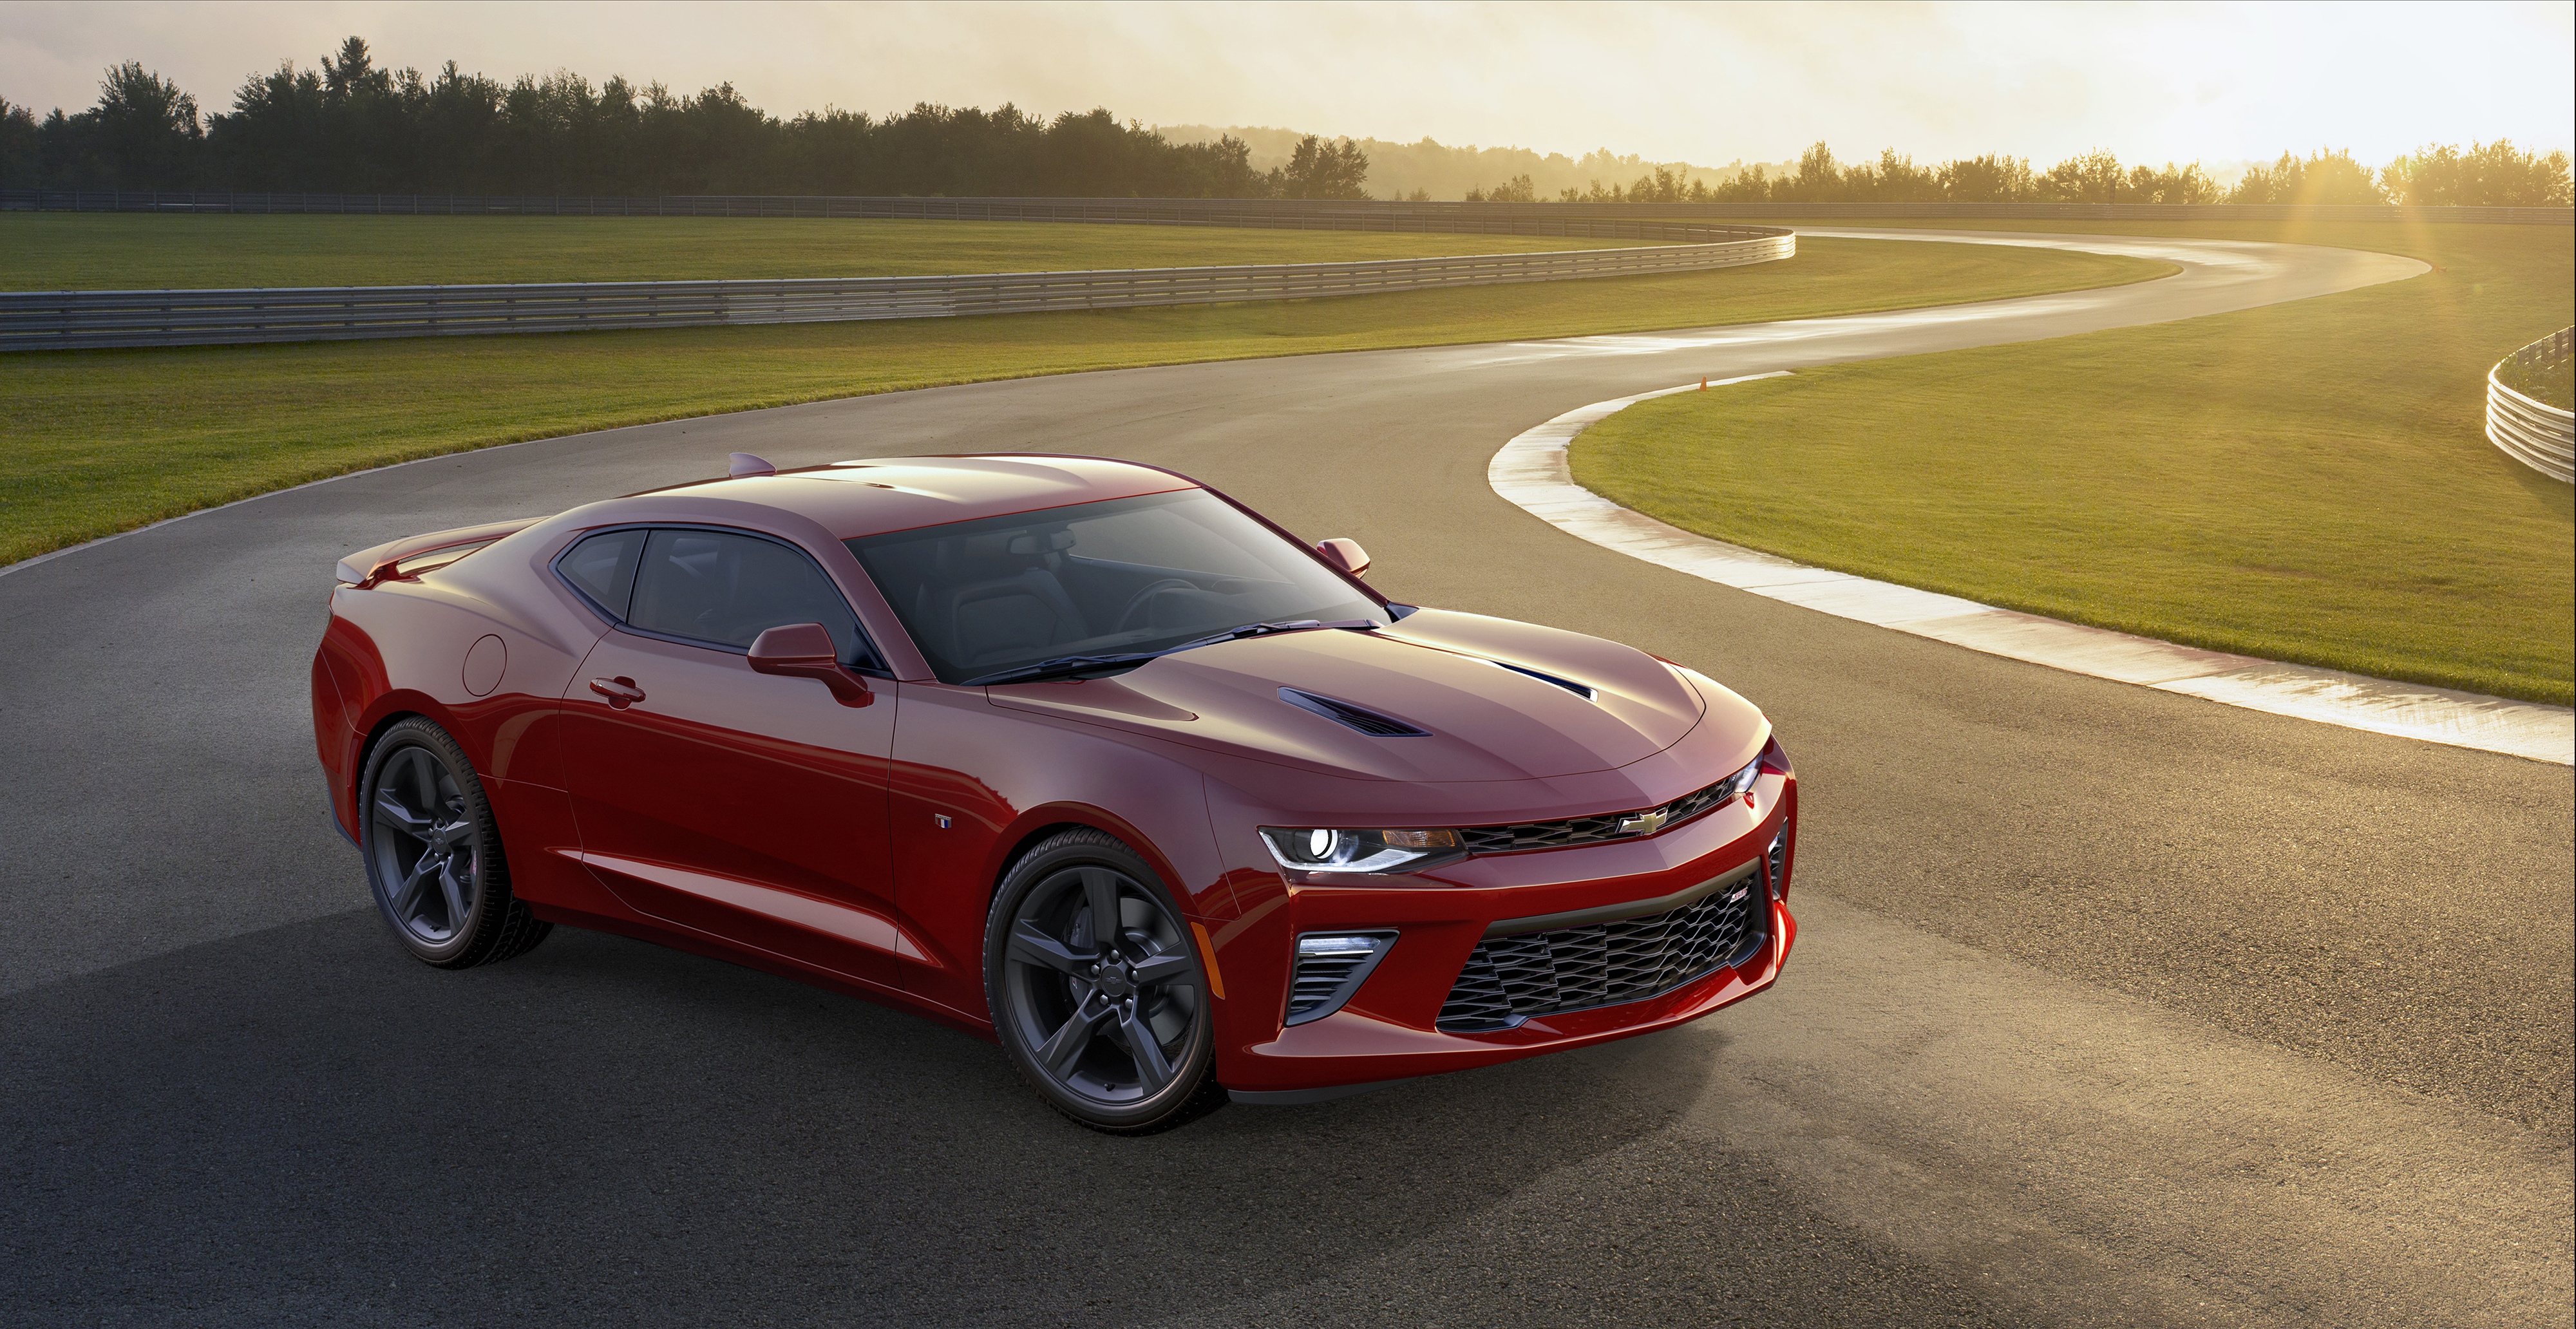 Design and specifications of the latest generation Chevrolet Camaro